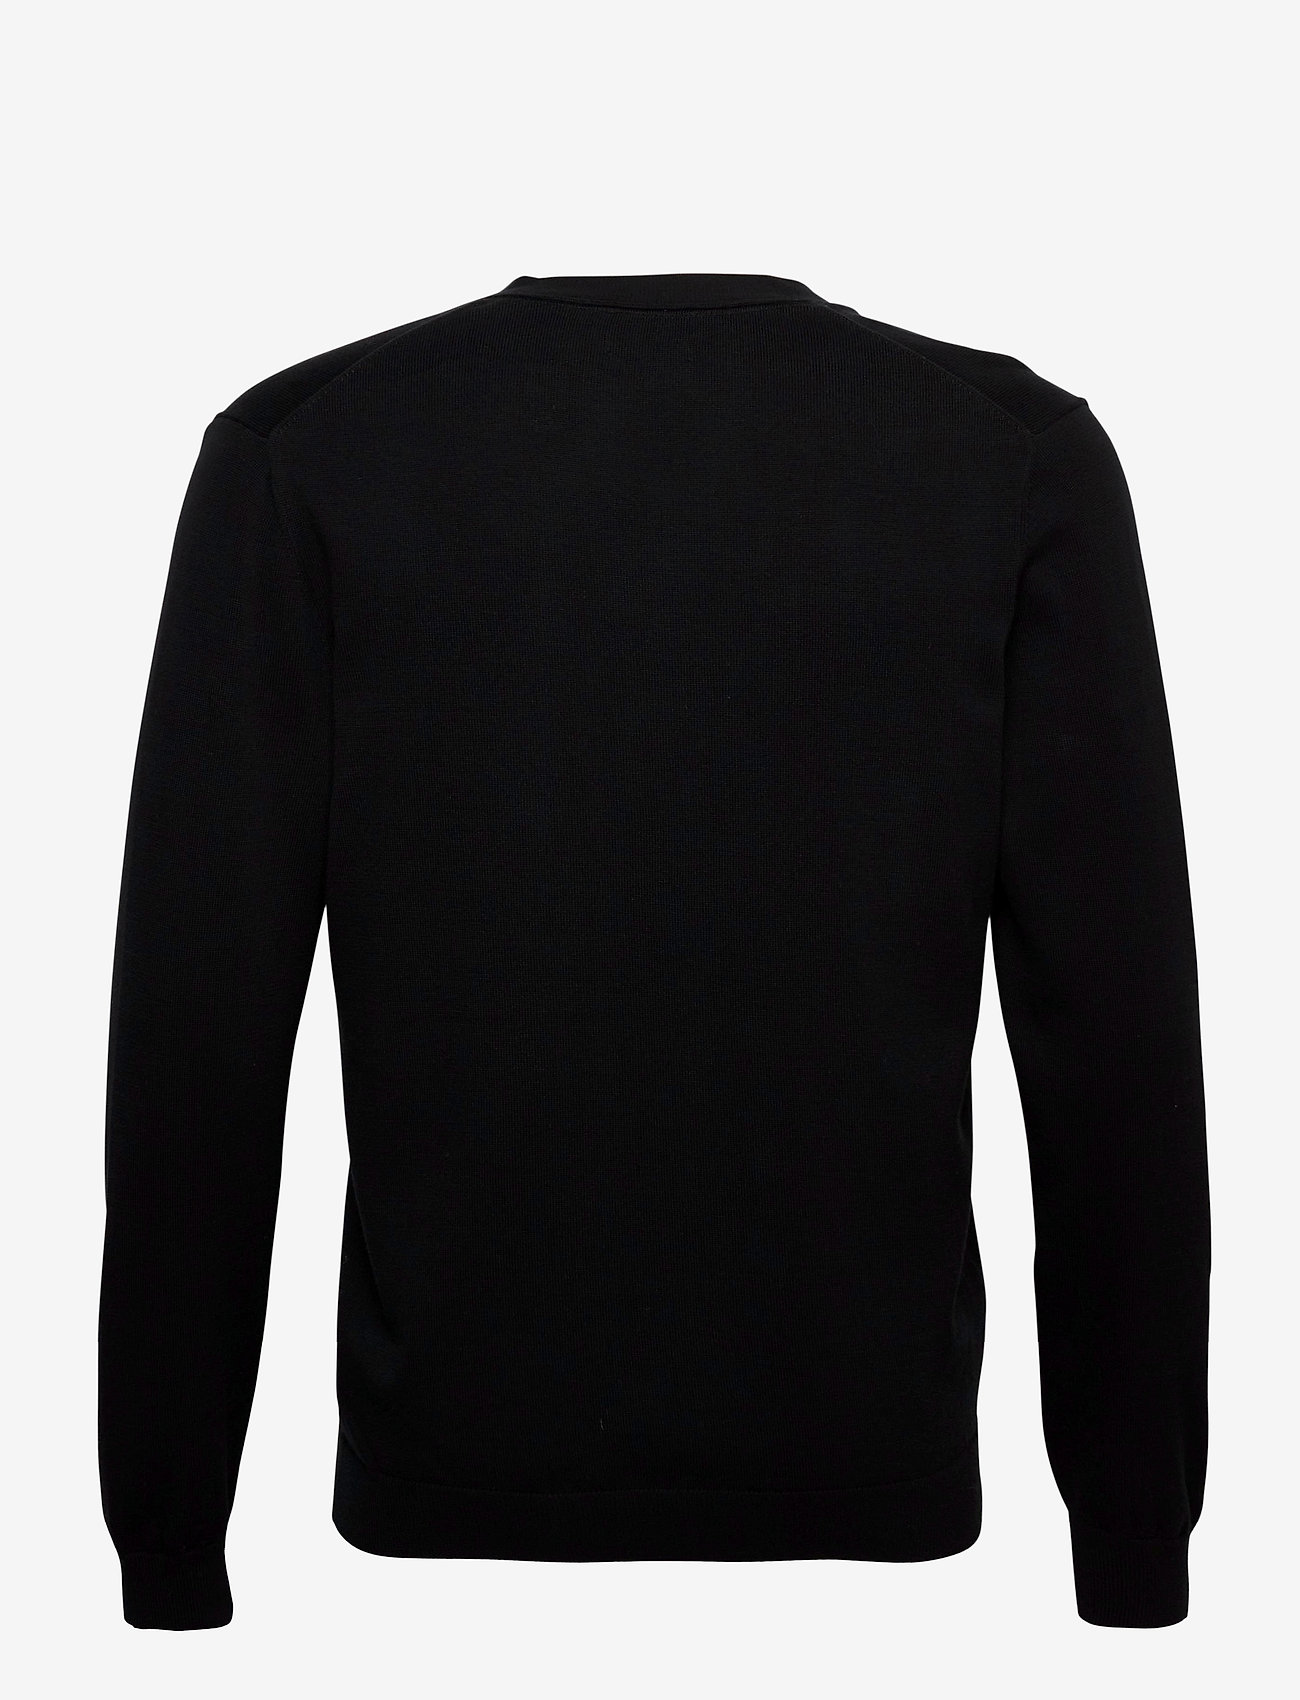 Esprit Collection - Sweaters - basic knitwear - black - 1